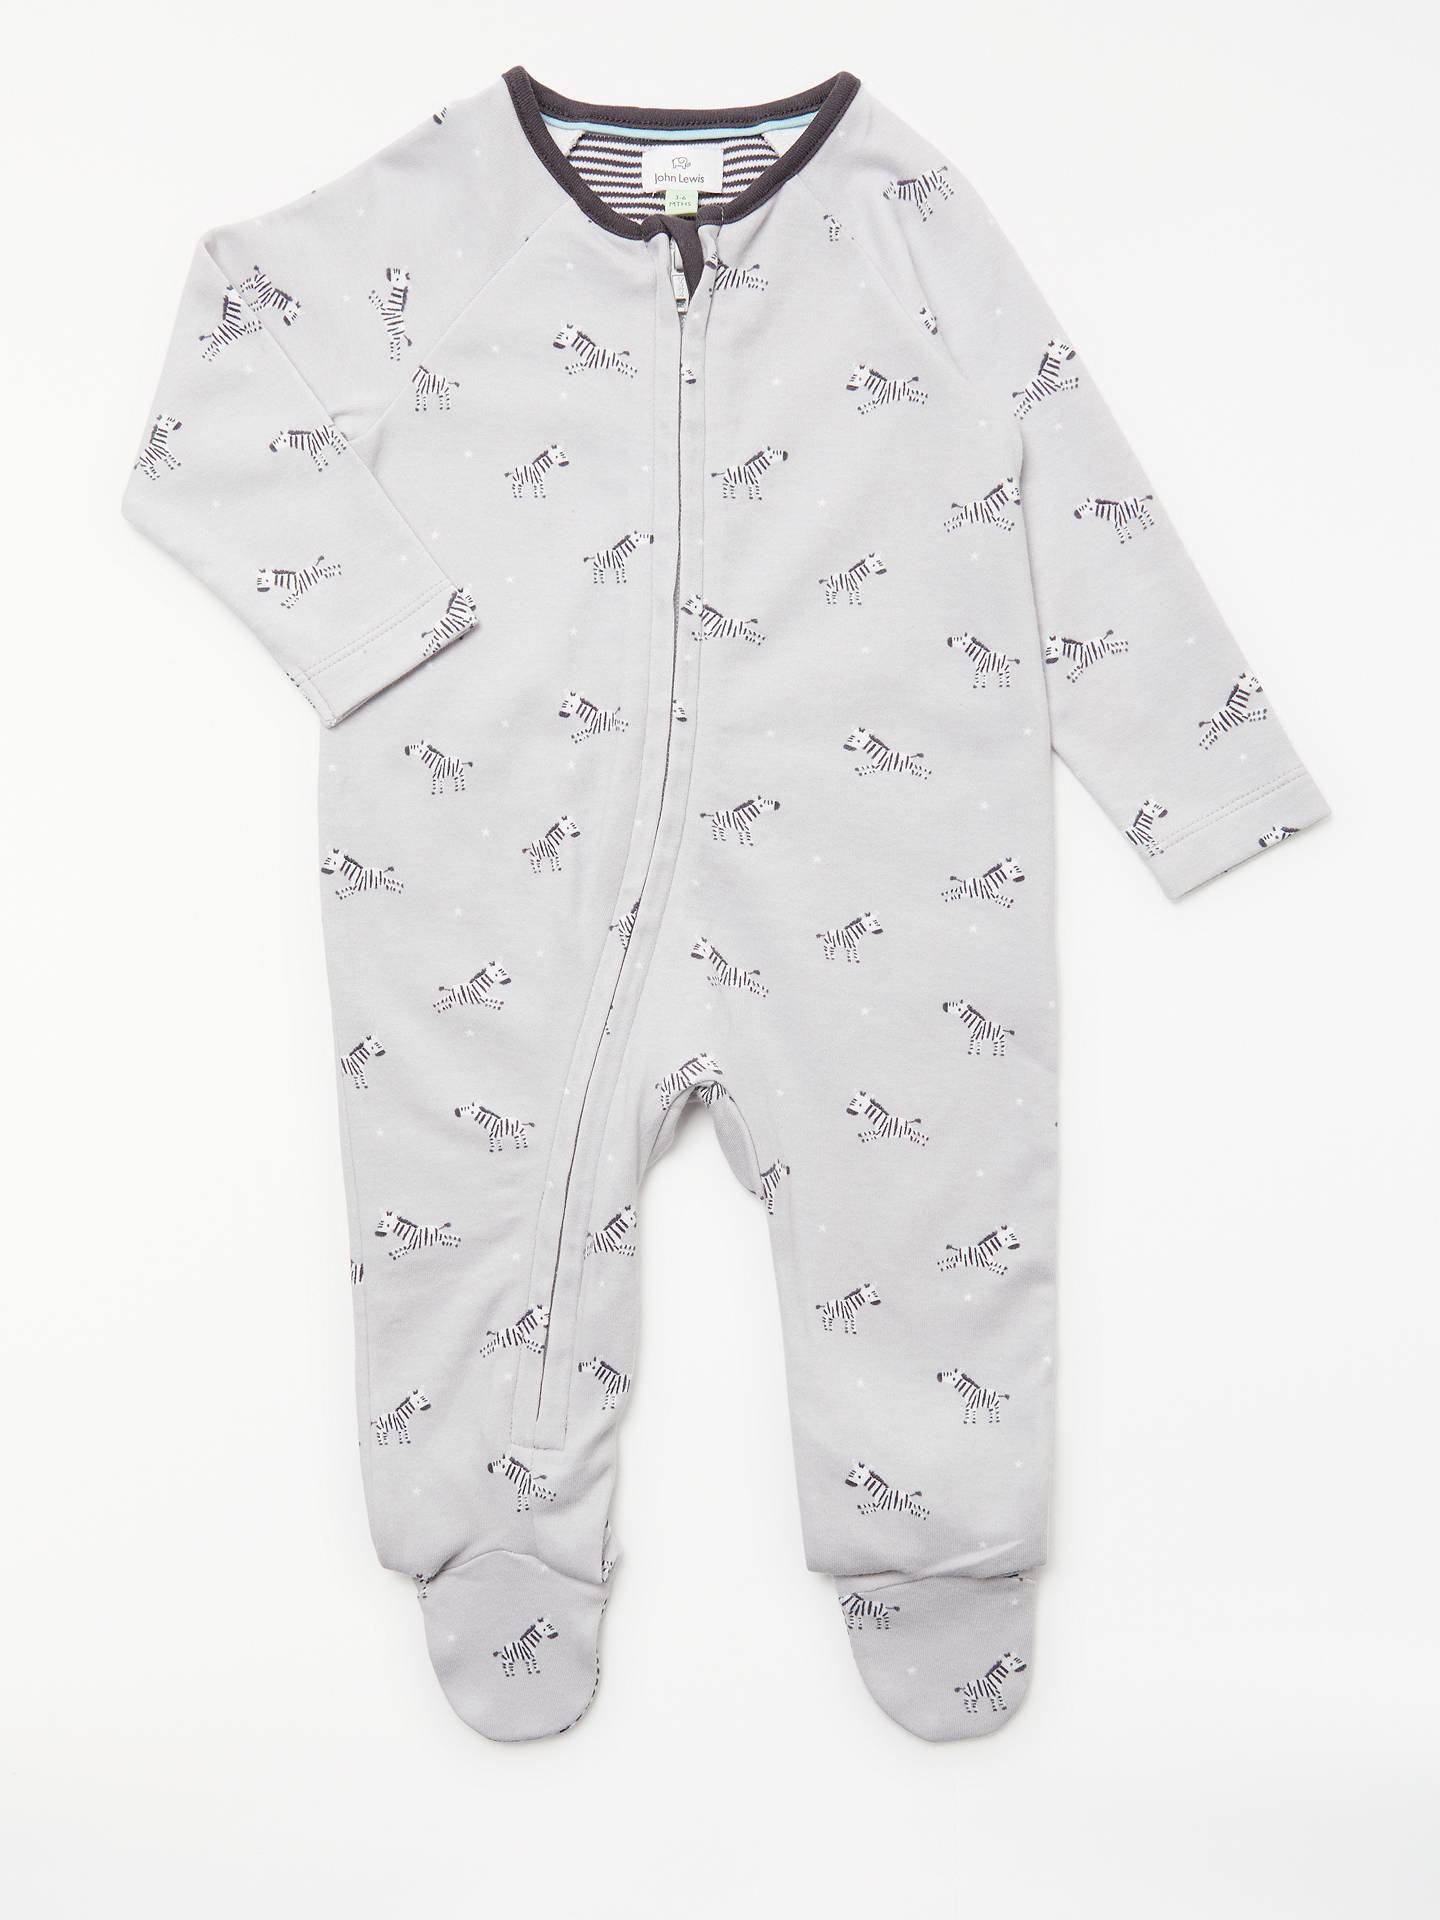 6392fb64ef1b John Lewis   Partners Baby GOTS Organic Cotton Zebra Zip Up ...